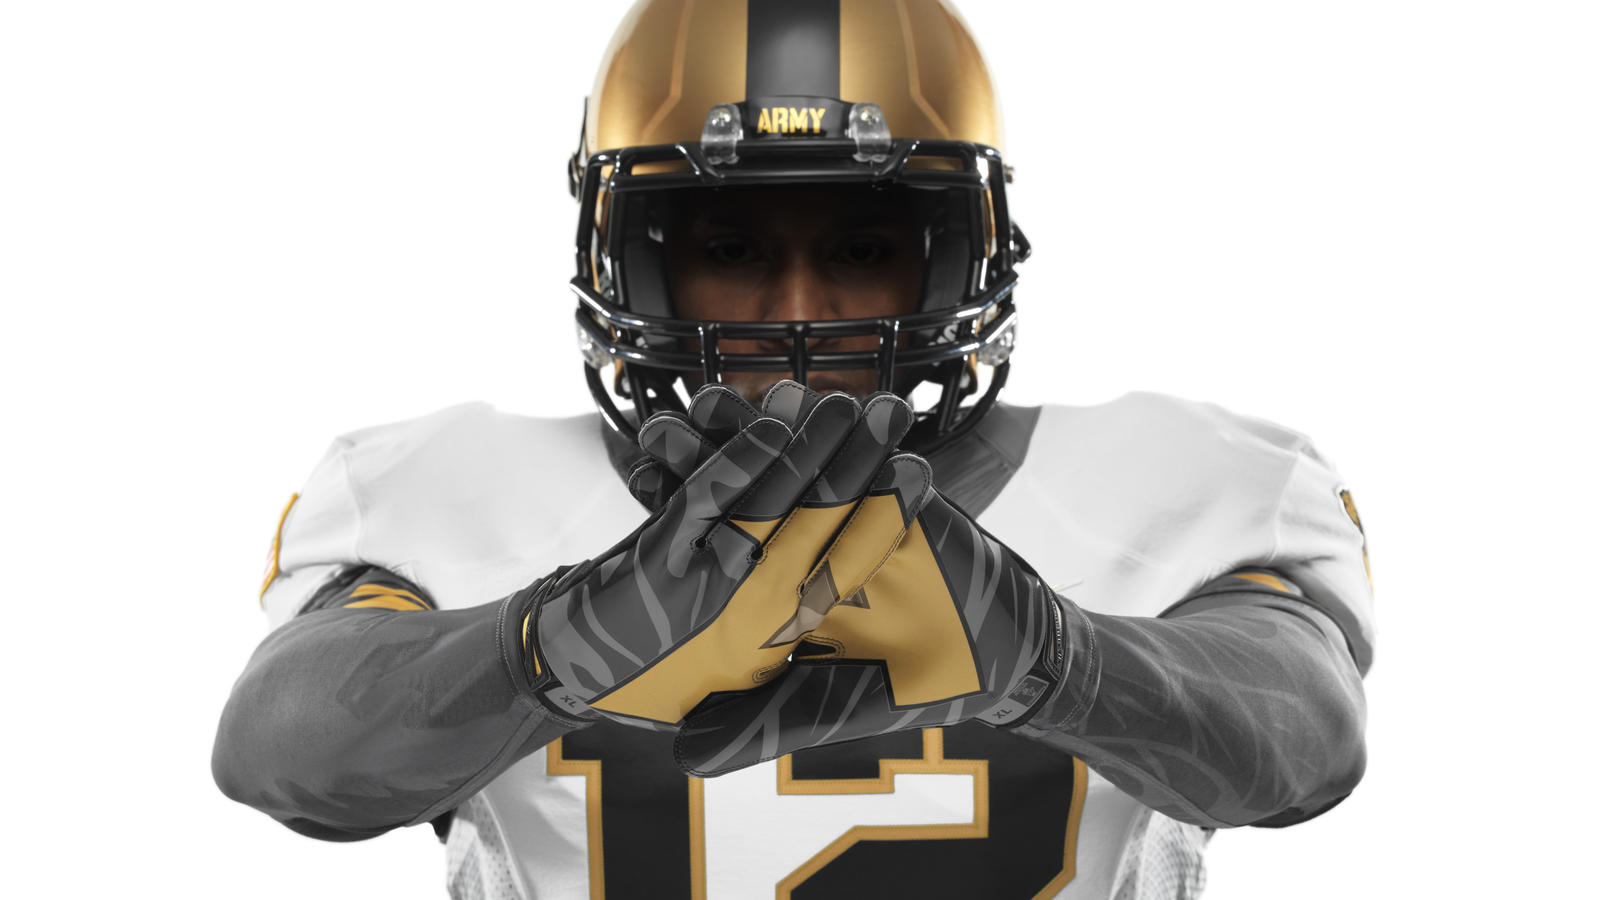 ncaa_fb13_uniforms_army_gloves_0039